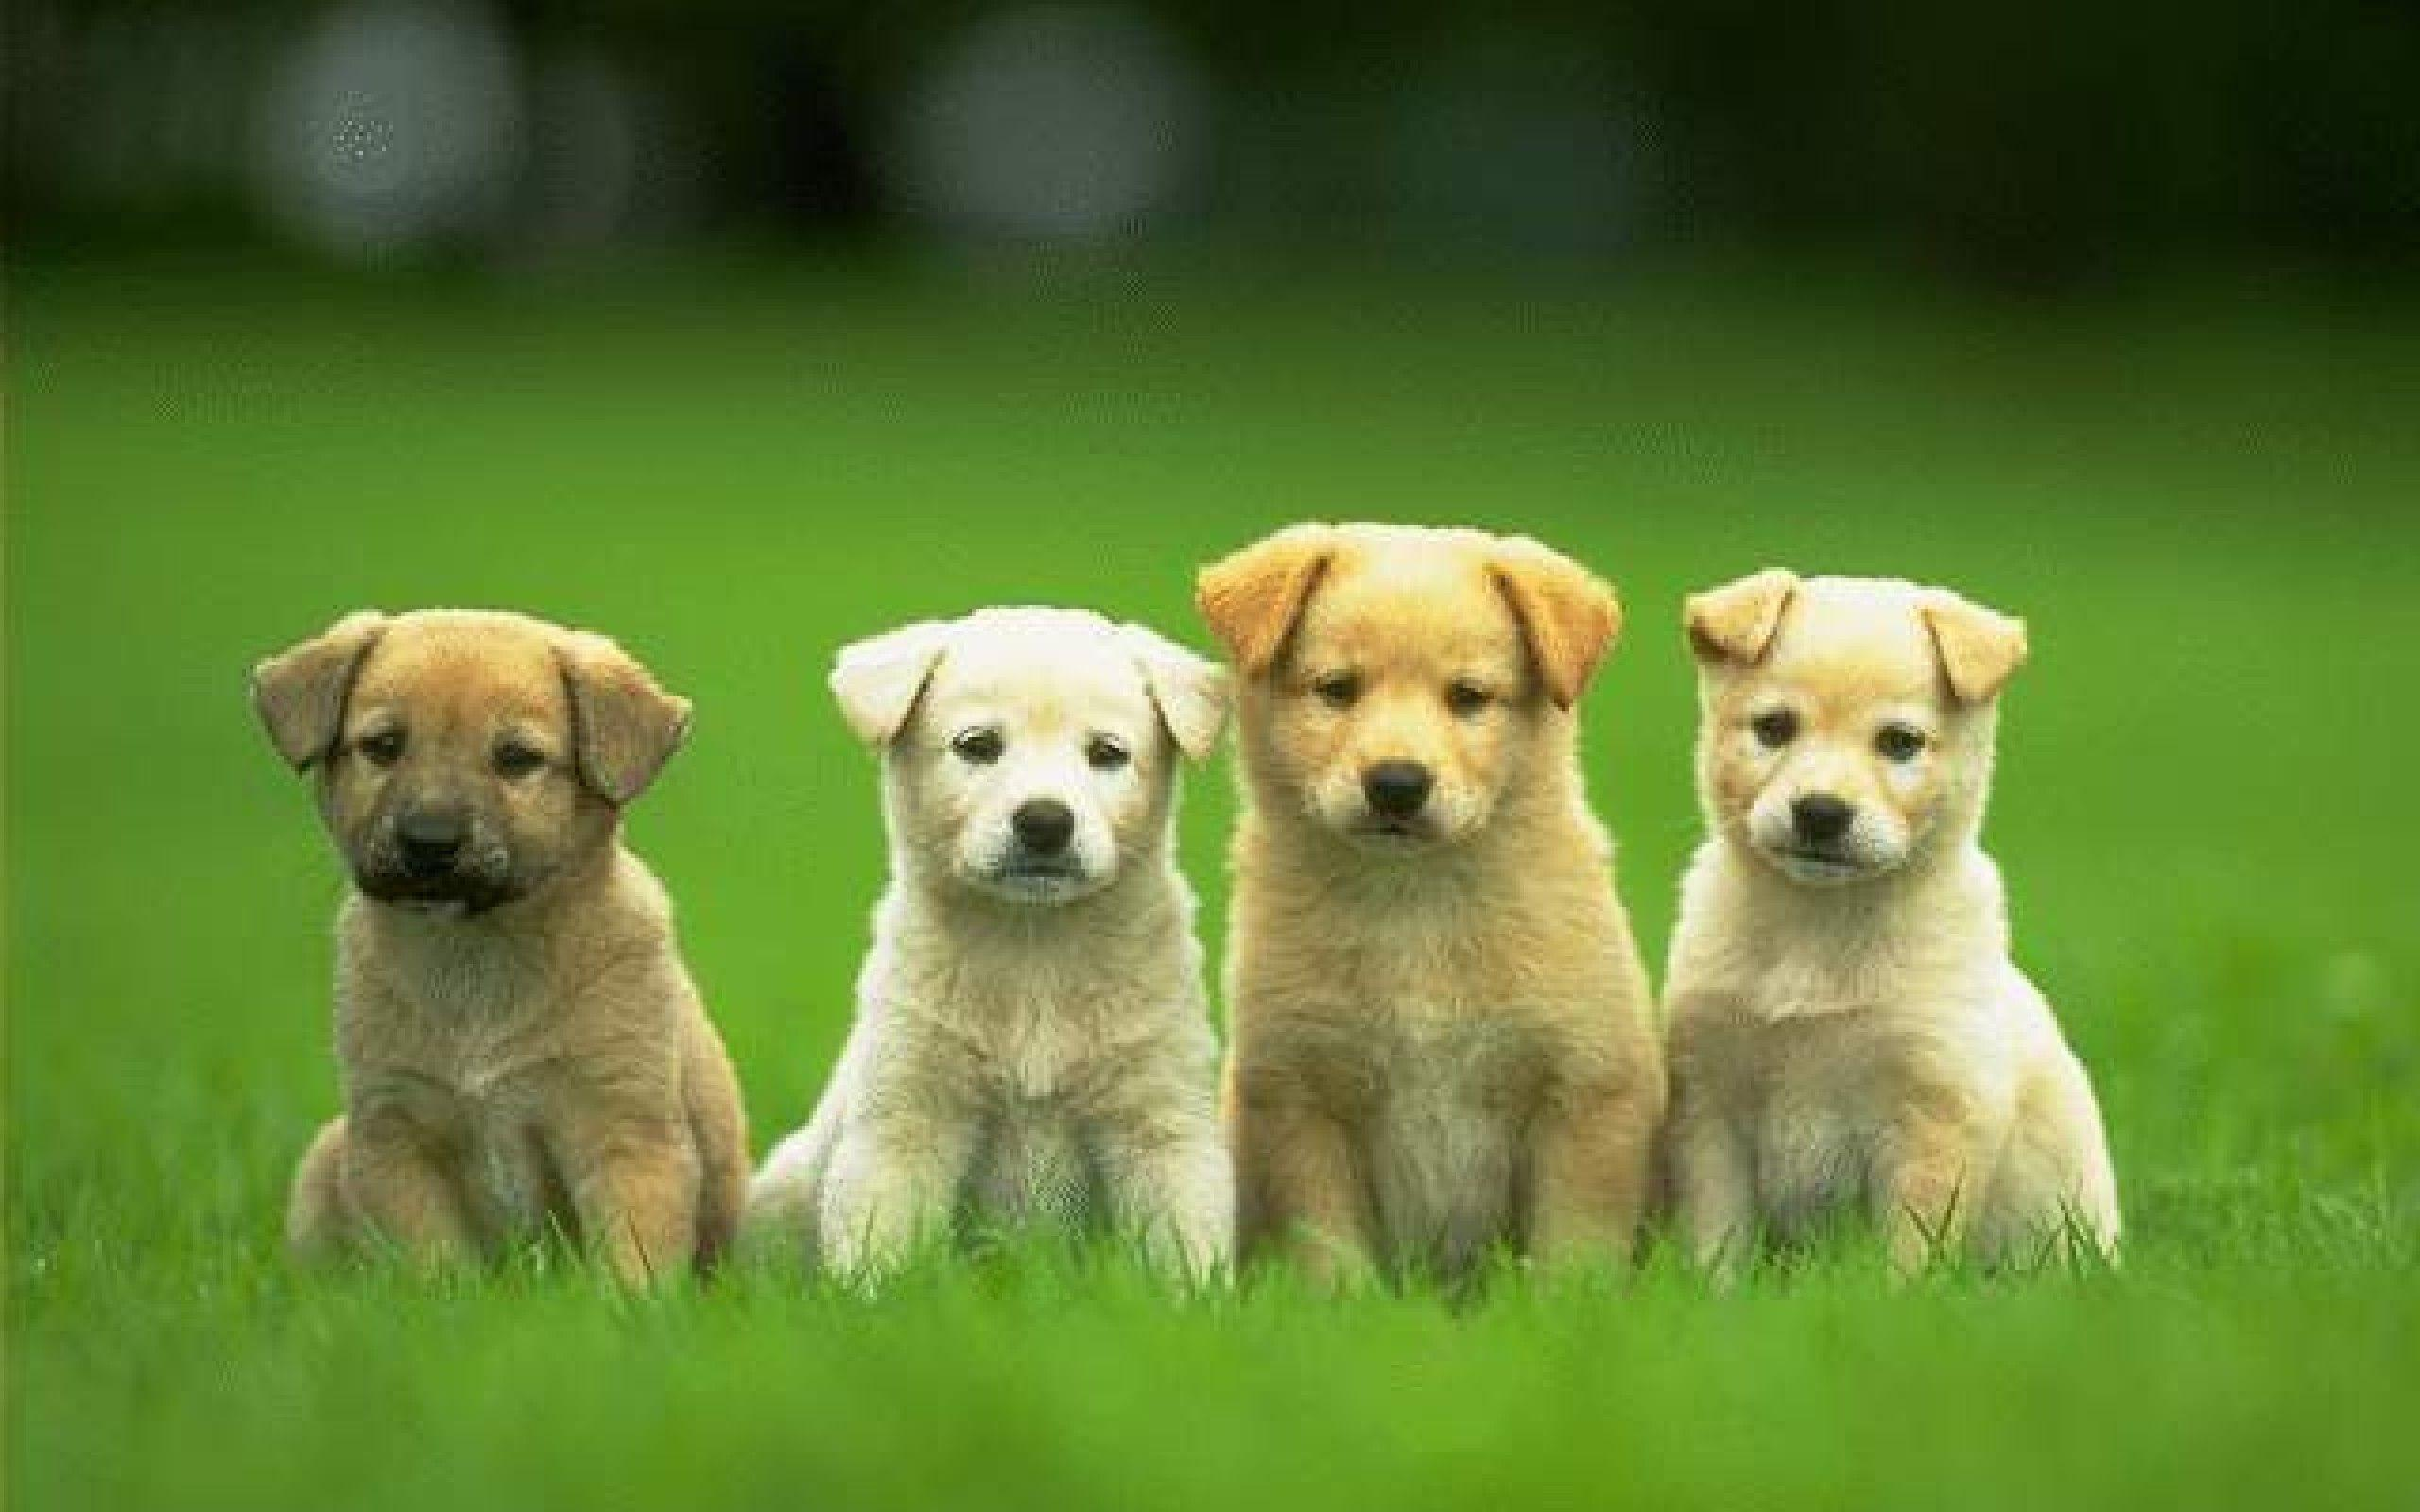 Image For > Cute Dogs Wallpapers Free Download